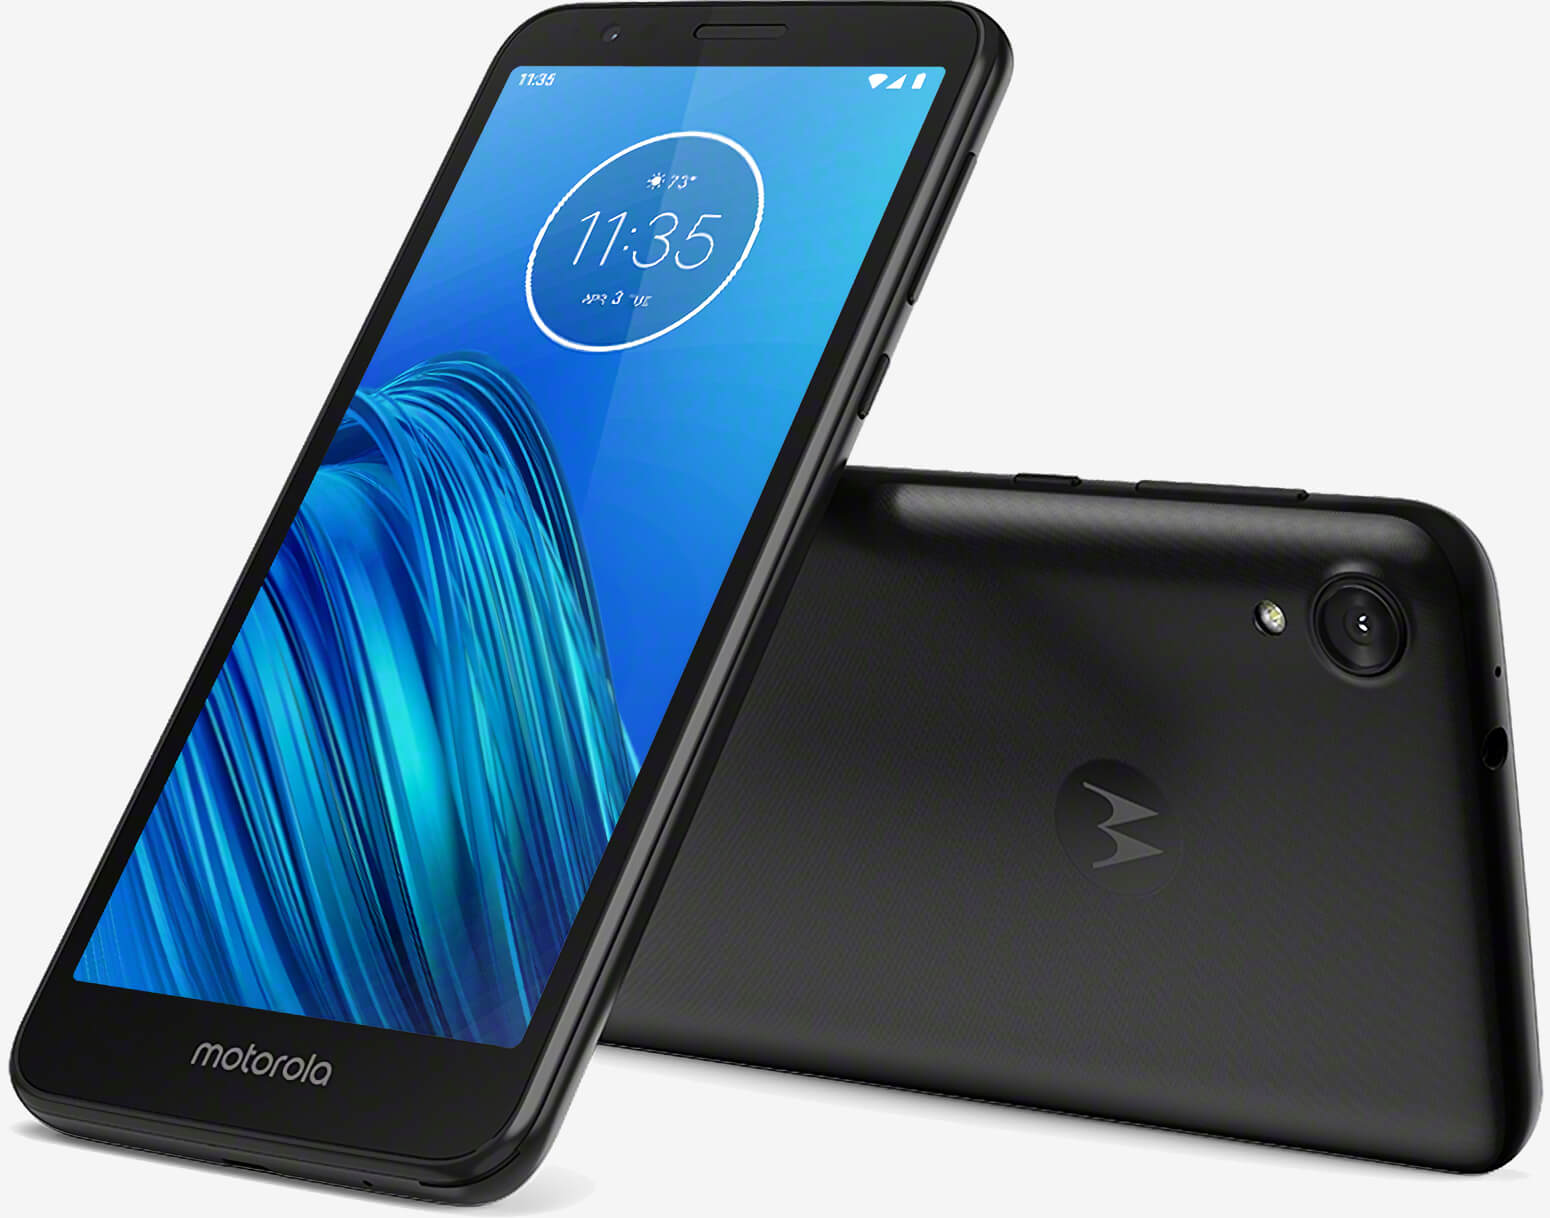 Moto E6 gets octa-core processor and removable battery for under $150